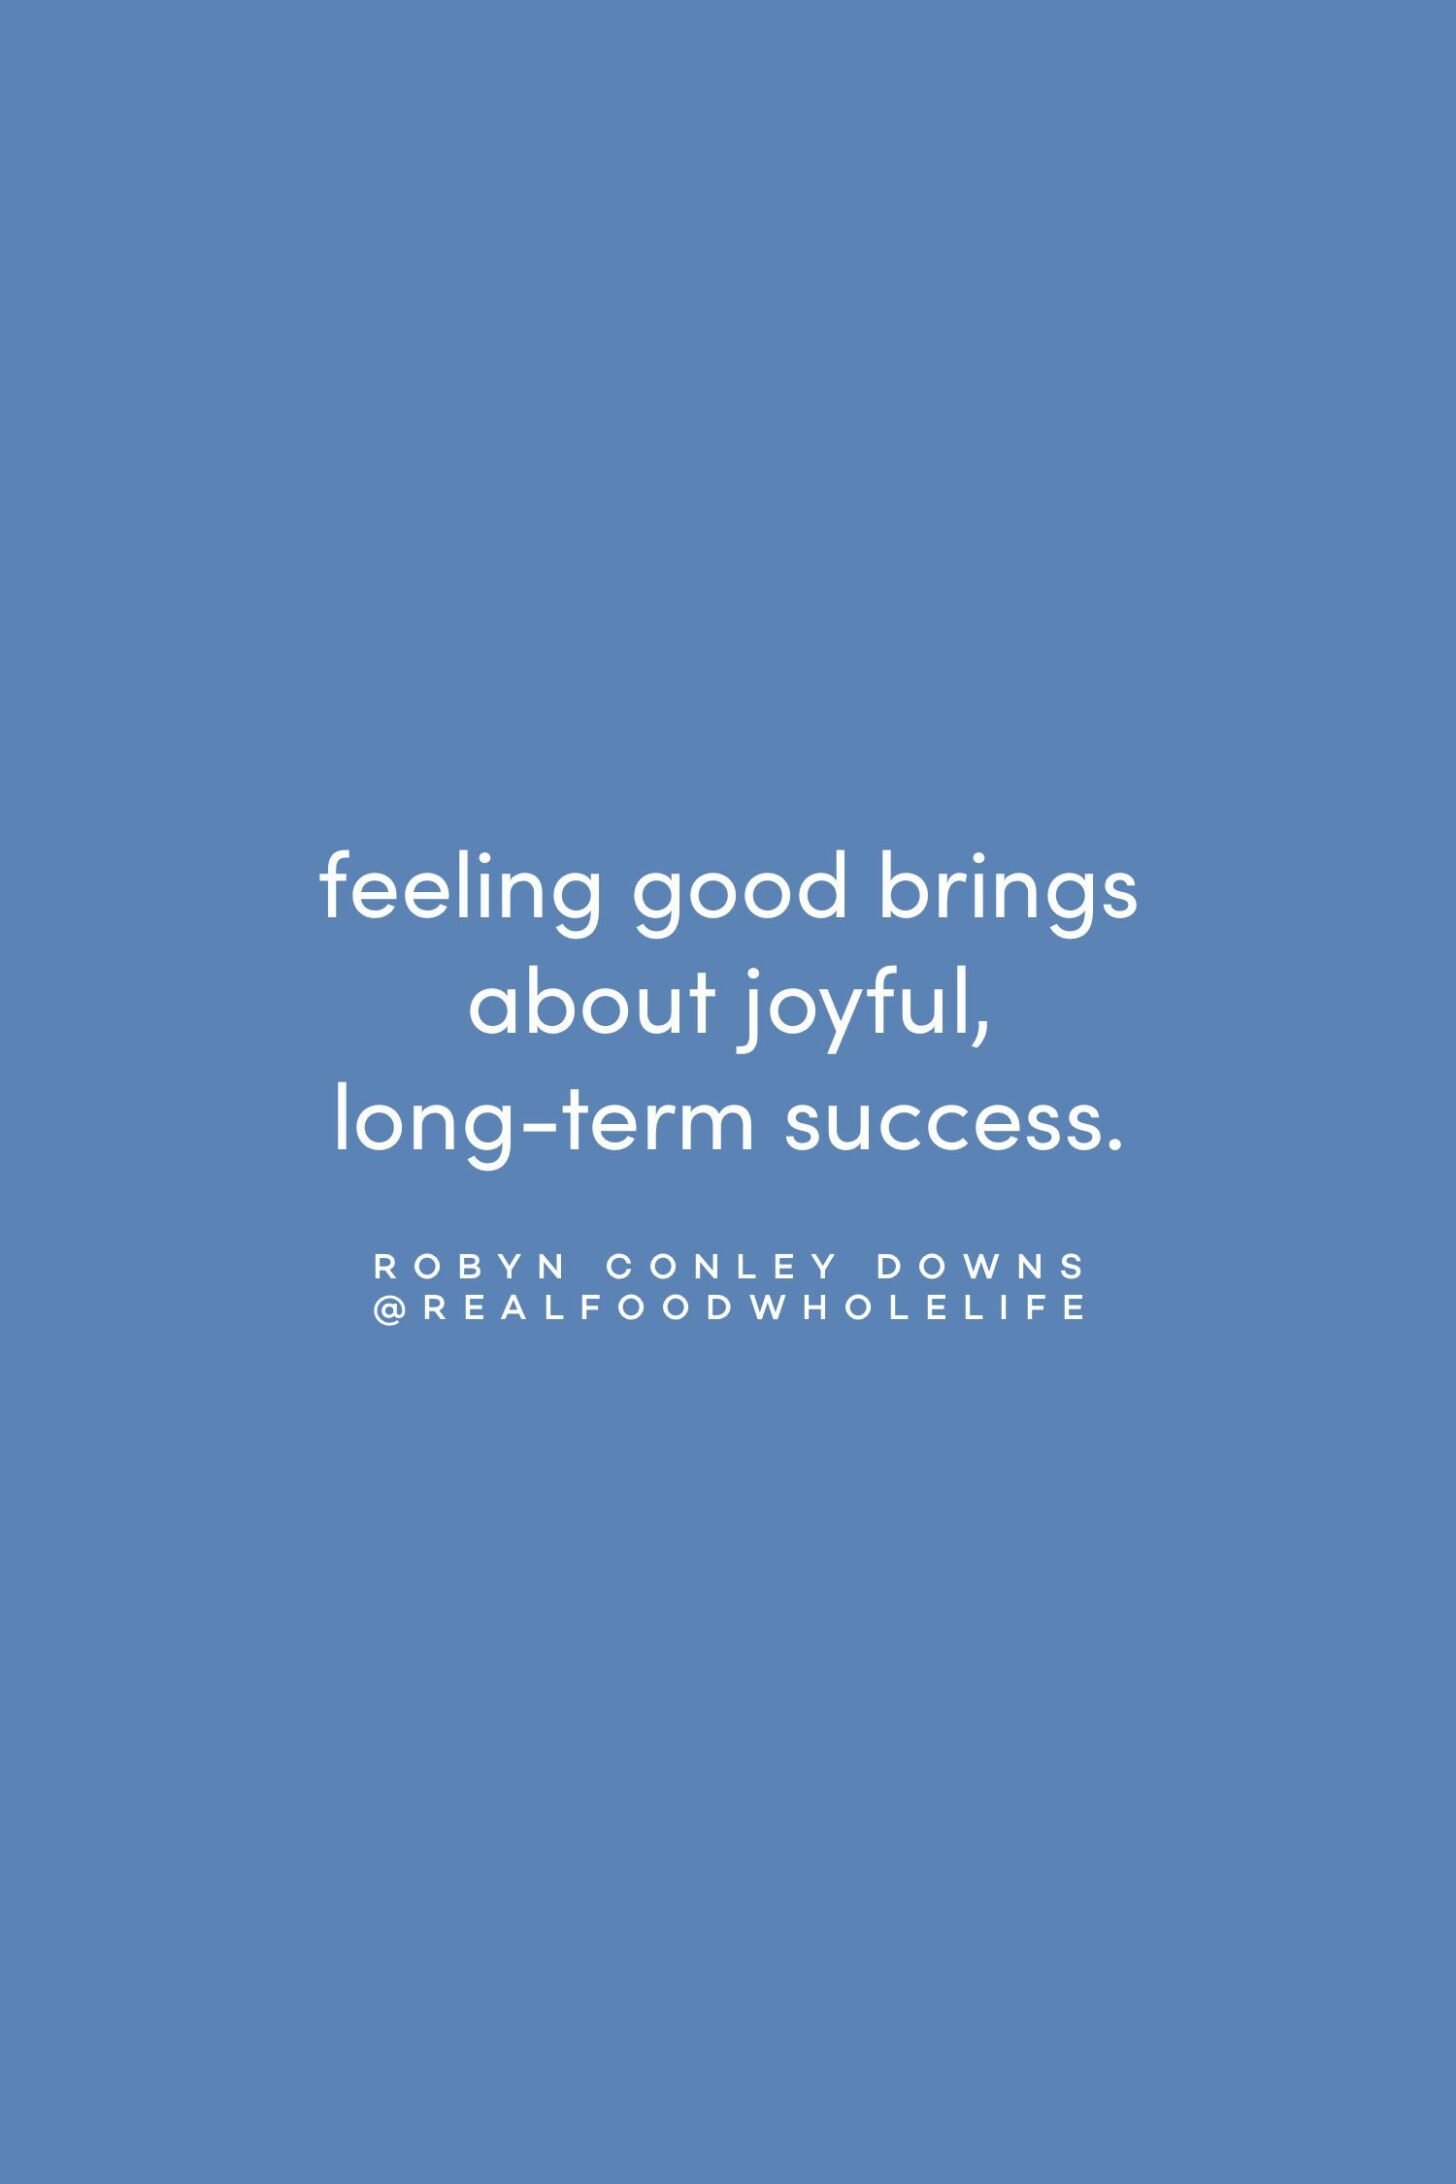 Quote onjoyful, long-term success by Robyn Conley Downs on the Feel Good Effect Podcast #realfoodwholelife #feelgoodeffectpodcast #motivationalquote #inspirationalquote #positivityquote #wellnessquote #routinesquote #selfcarequote #selfcompassionquote #feelgoodeffect #longtermsuccessquote